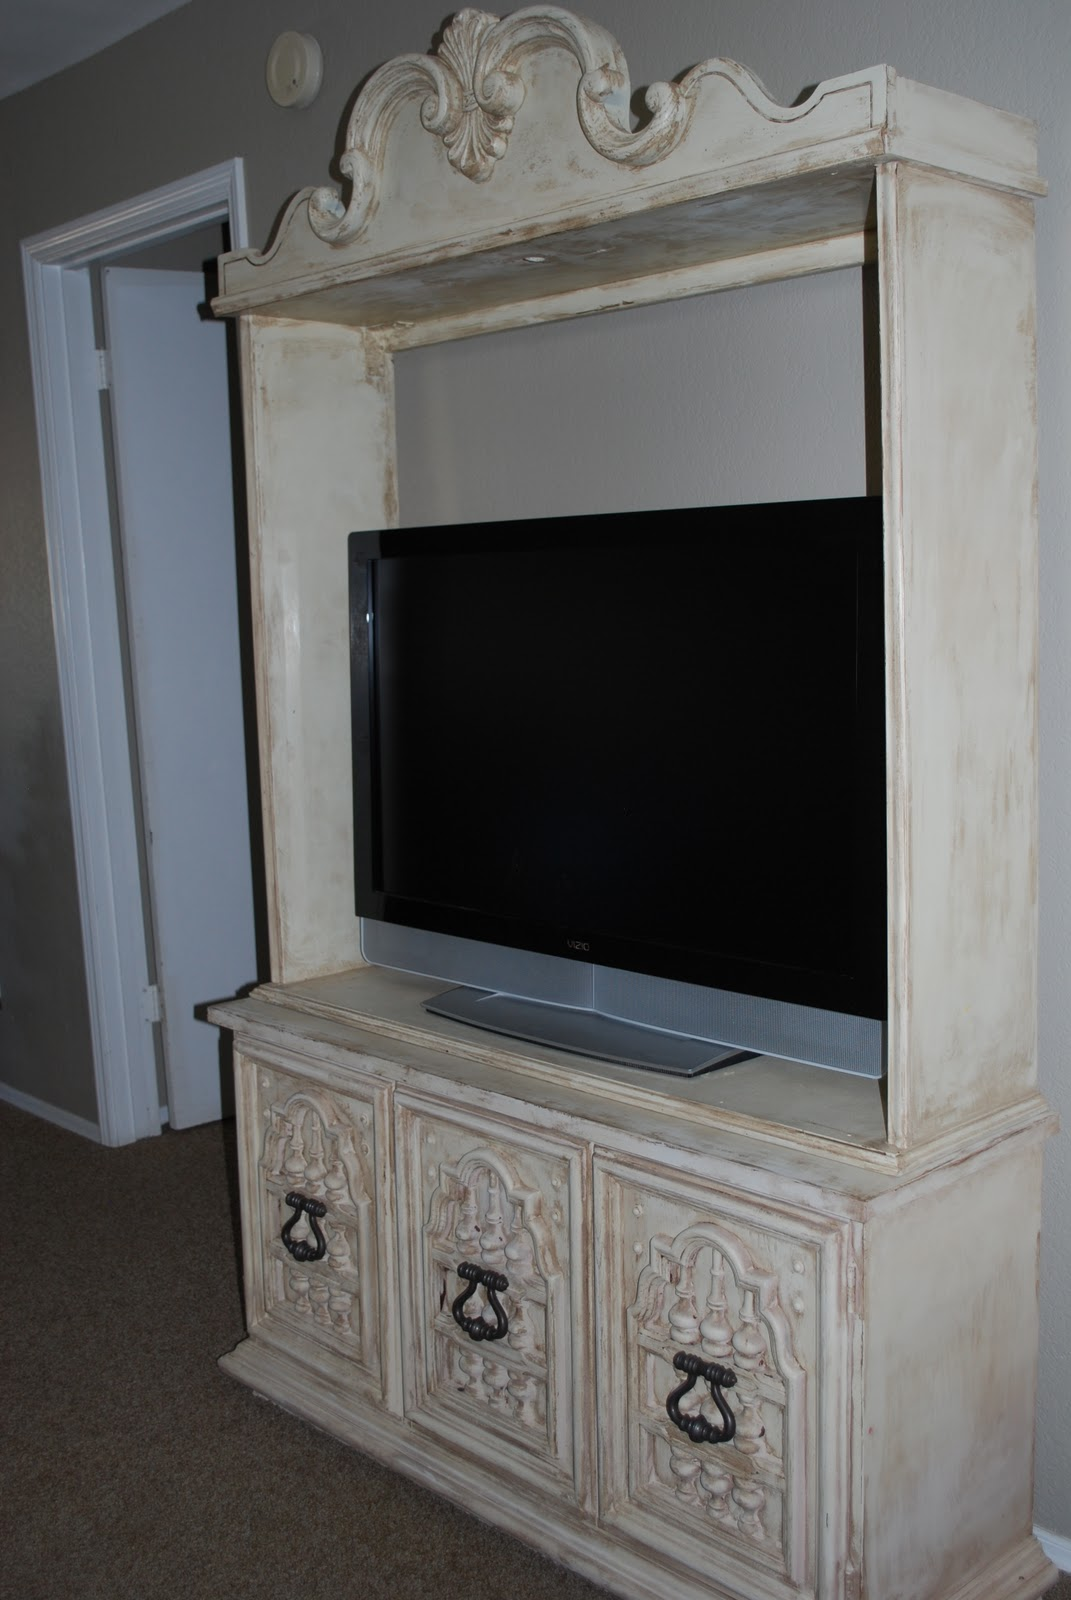 by with saved room screens hutch armoires doors you the fold bi tv much open for can how flat is pin see